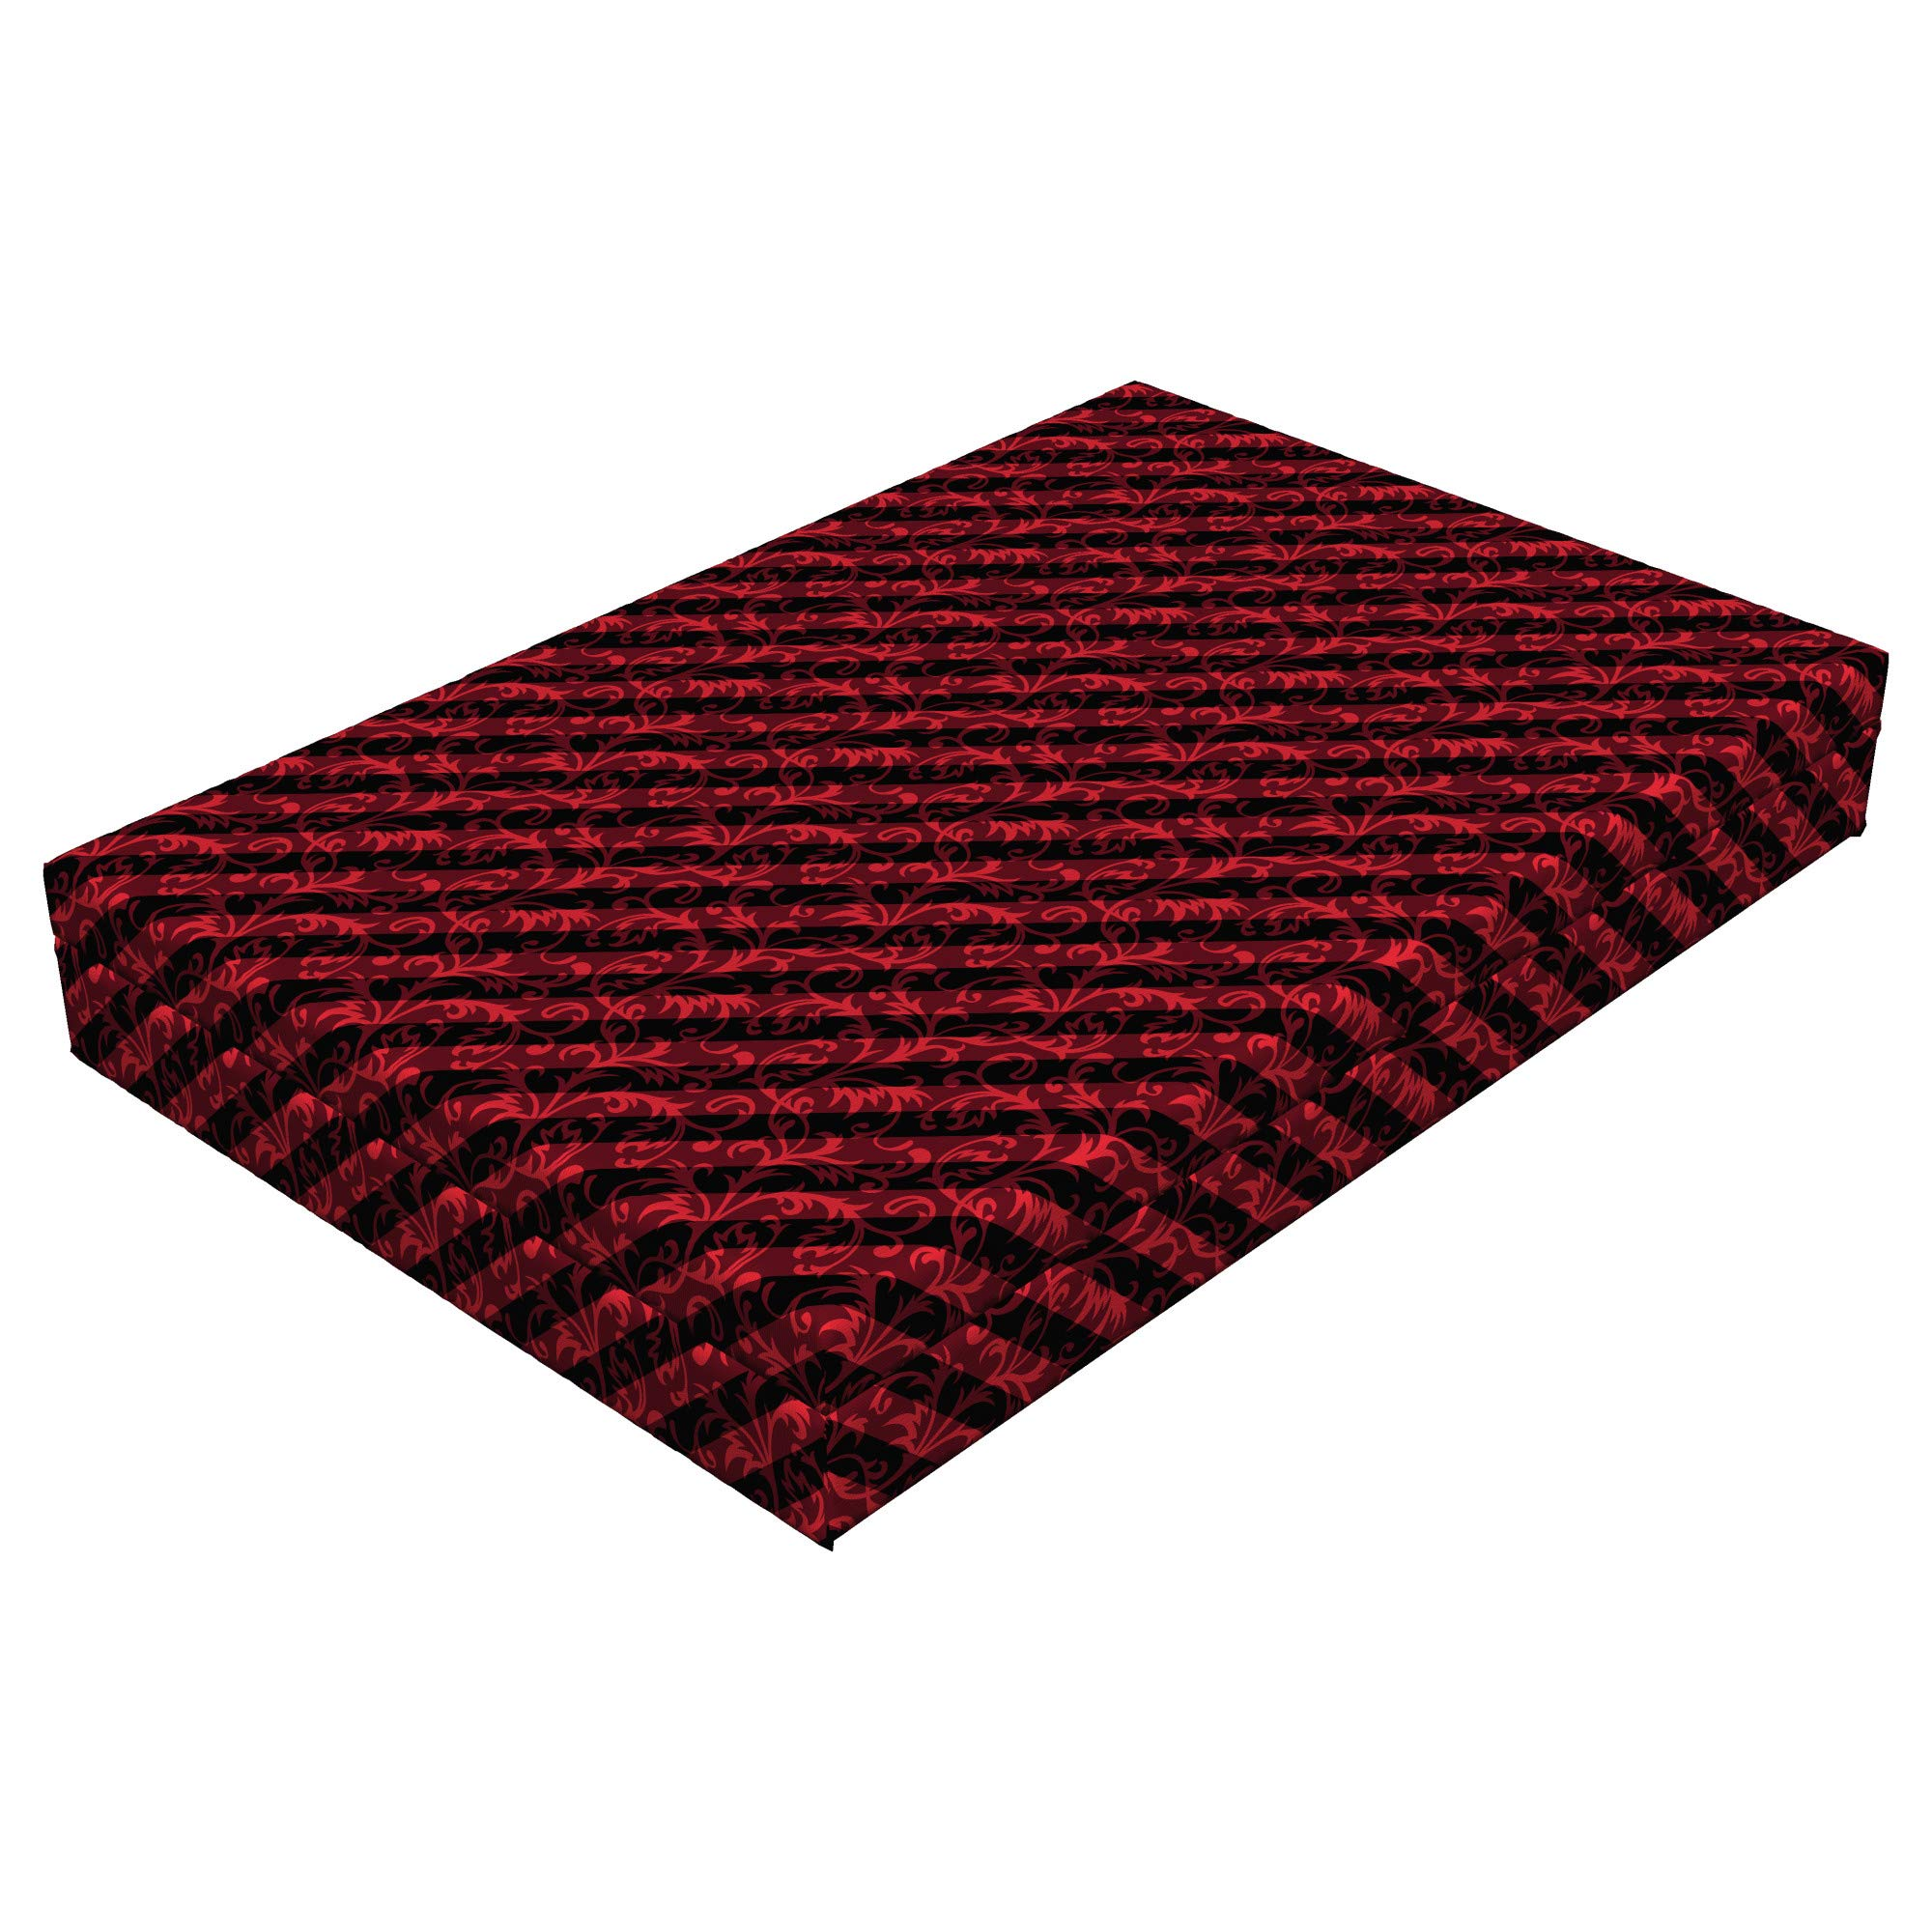 Lunarable Abstract Dog Bed, Swirled Curved Leaves Background with Parallel Classical Striped Lines Retro Print, Durable Washable Mat with Decorative Fabric Cover, 48'' x 32'' x 6'', Black Red